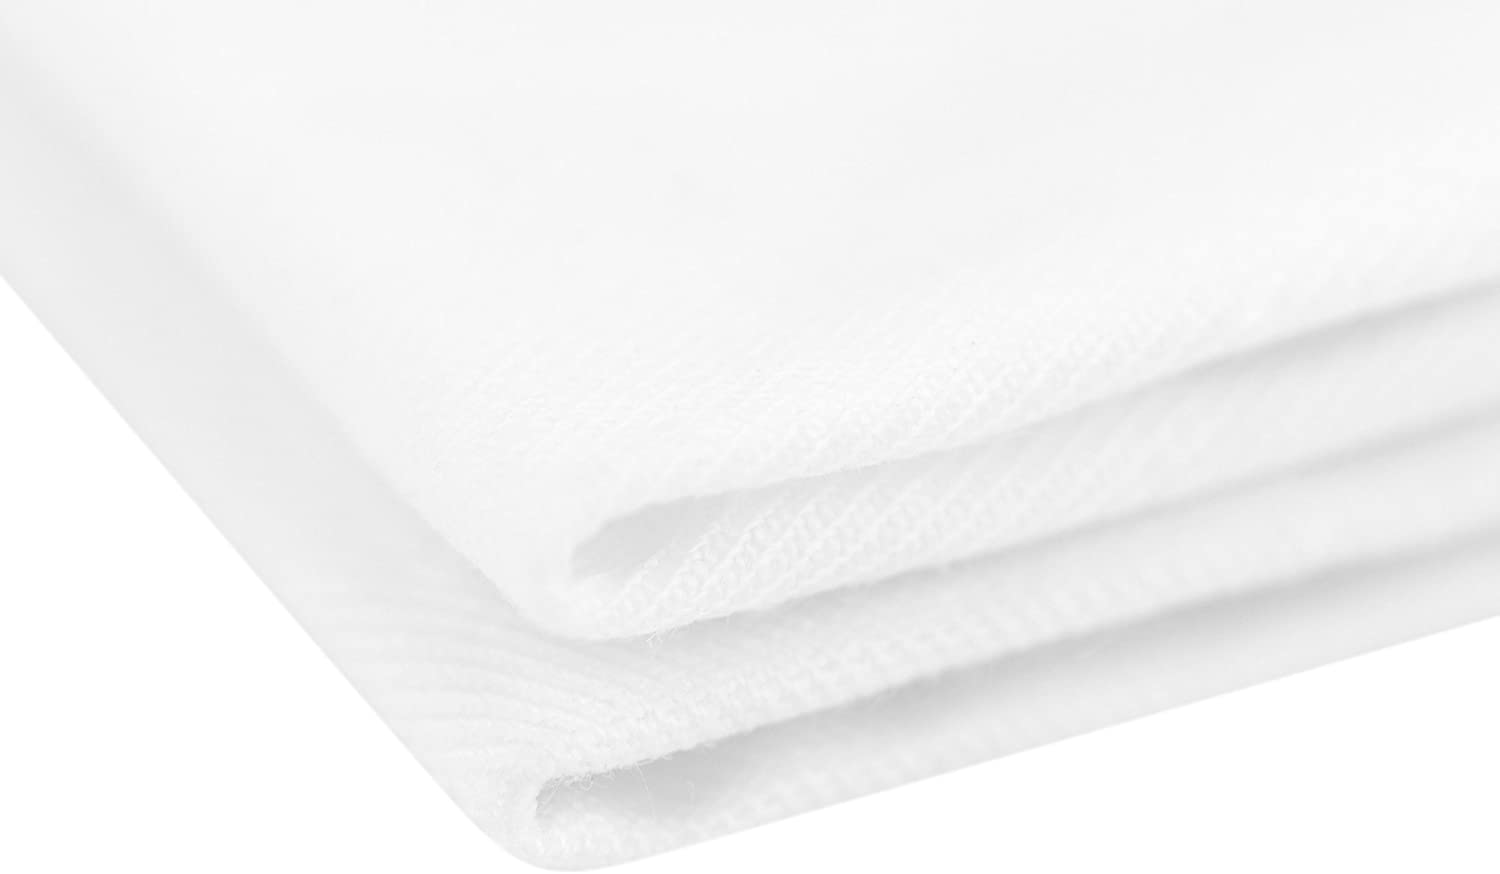 Holiday Wedding for Hotel Event Shower Picnics 48cm x 48cm // 18.9 x 18.9 inches Home Restaurant Party BBQ FiveSeasonStuff Pack of 10 Large White 100/% Cotton Dinner Napkins Buffet